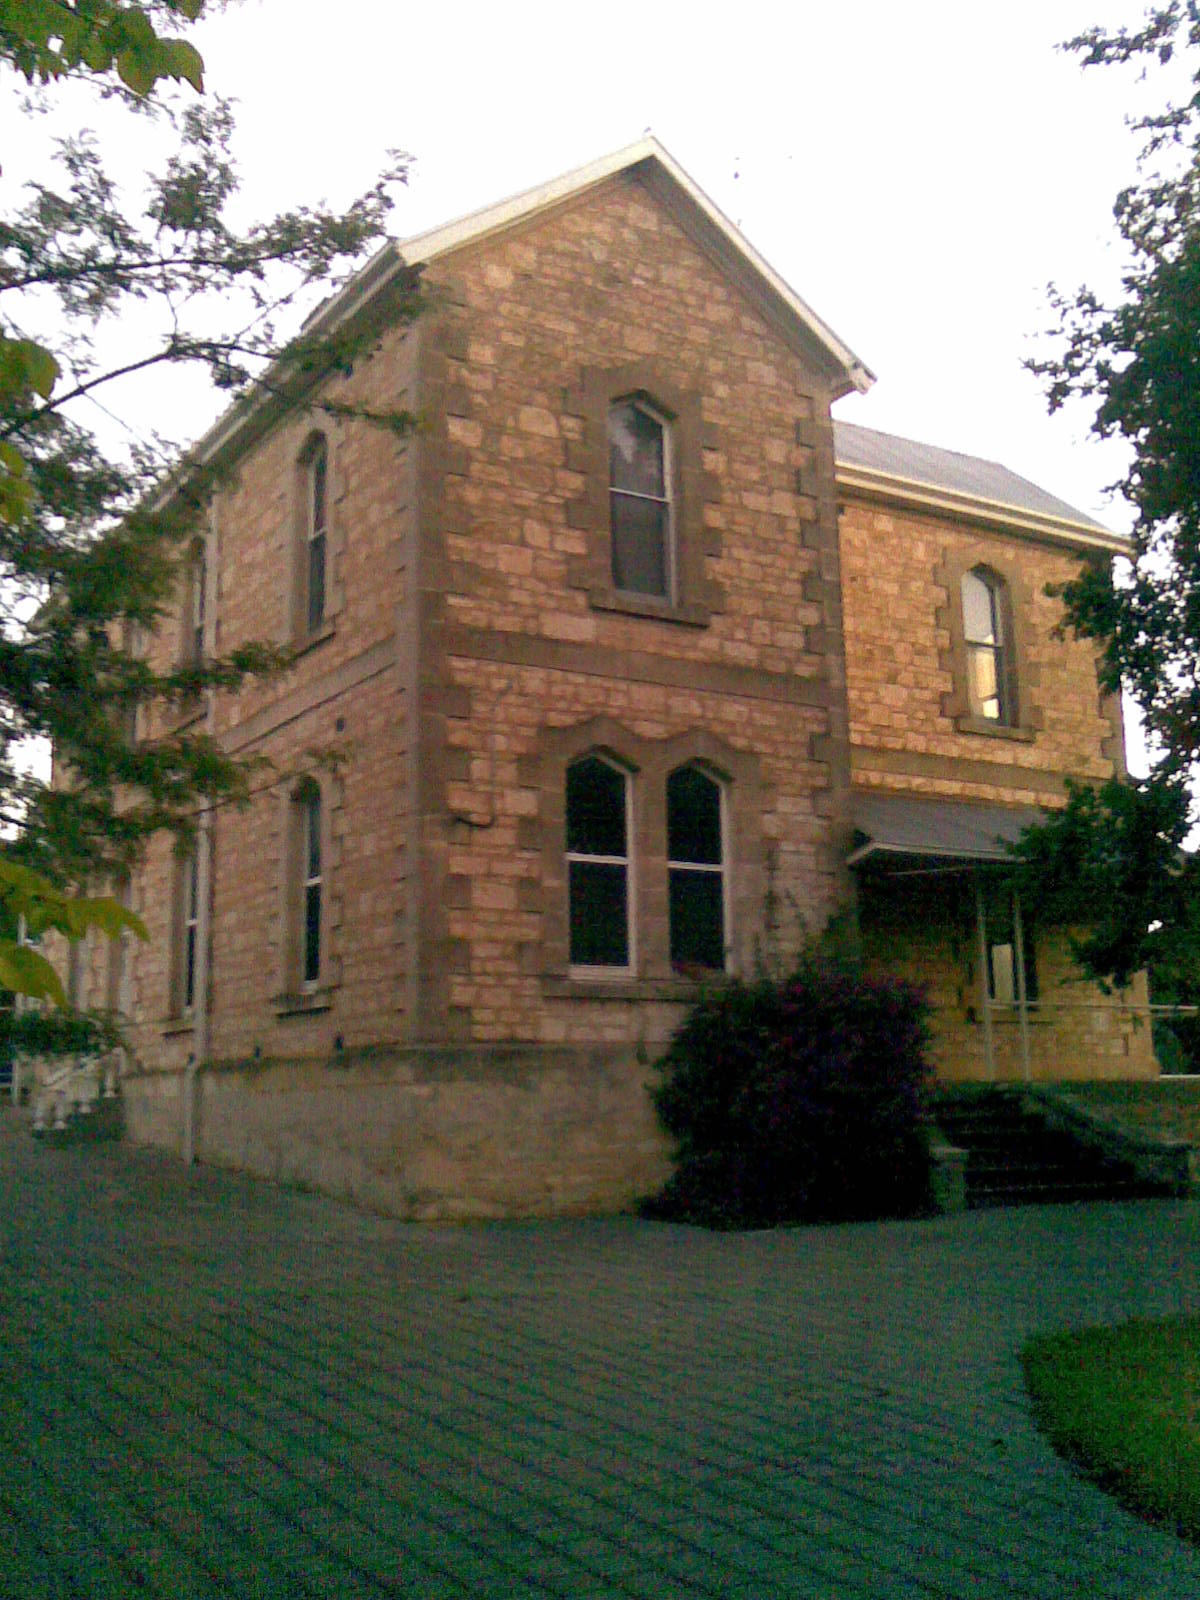 The Naracoorte Convent